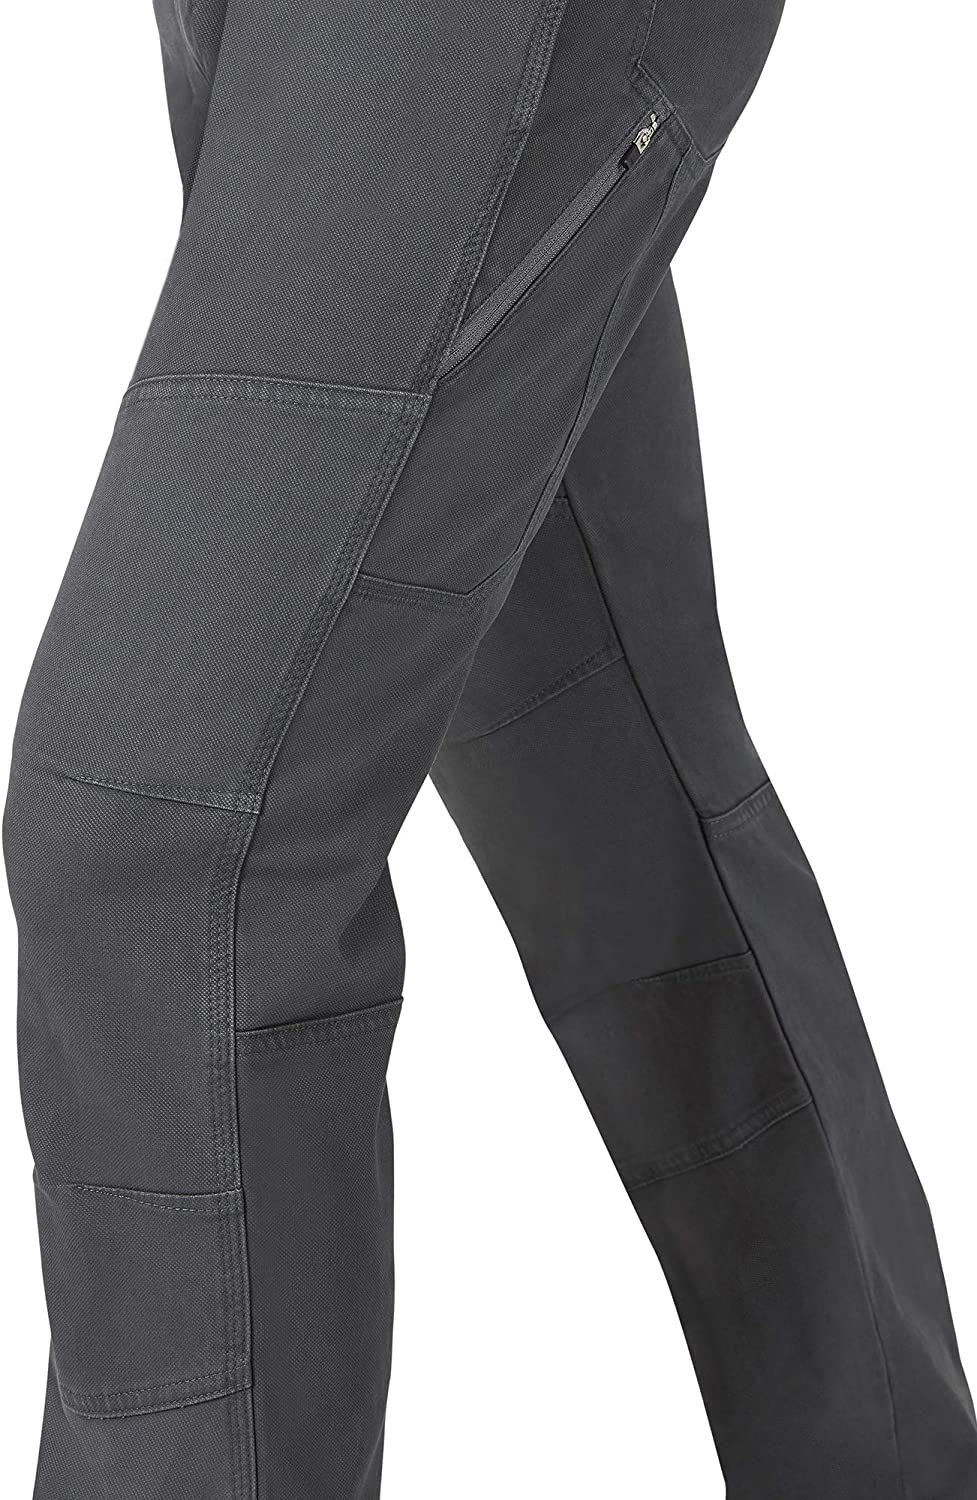 ATG by Wrangler Mens Reinforced Utility Pant Pants